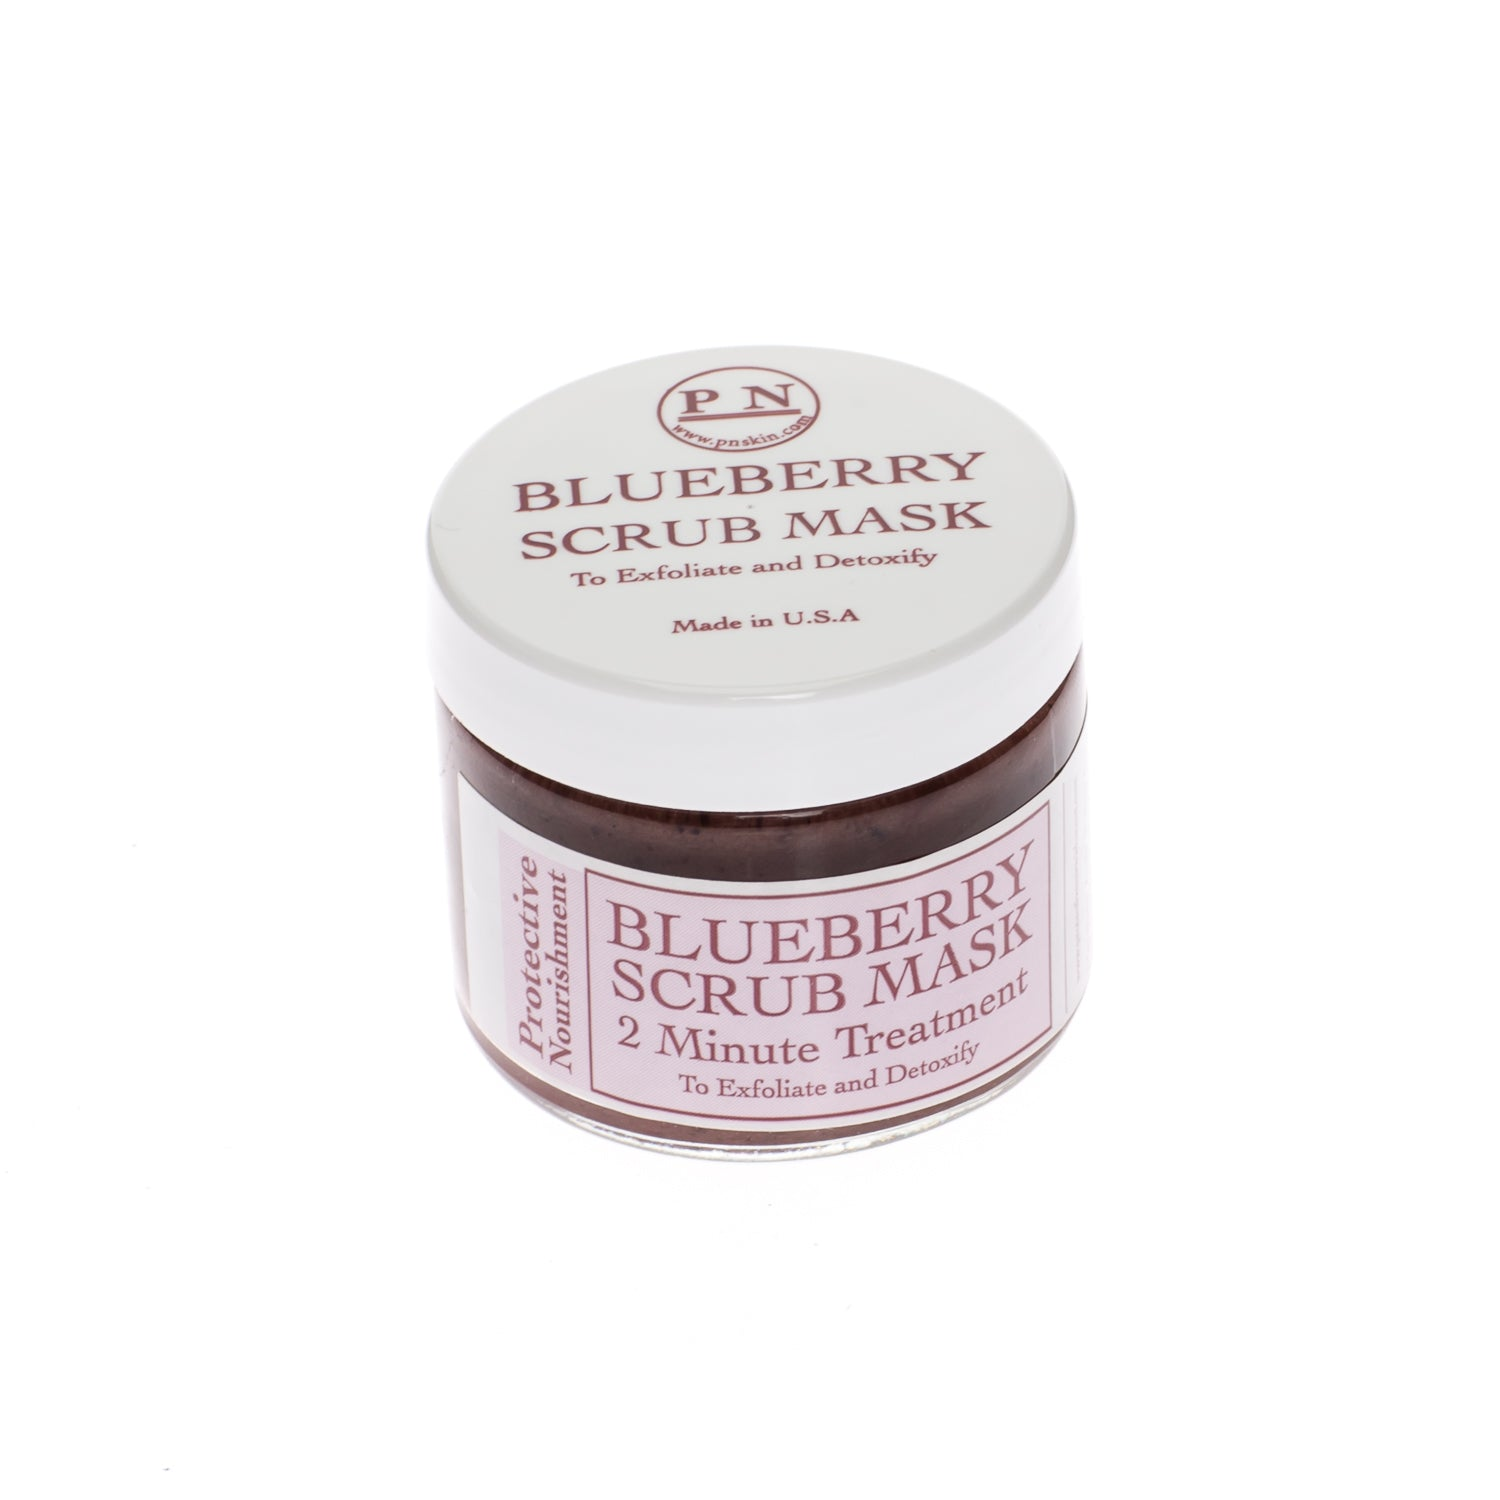 Blueberry Scrub Mask - Protective Nourishment